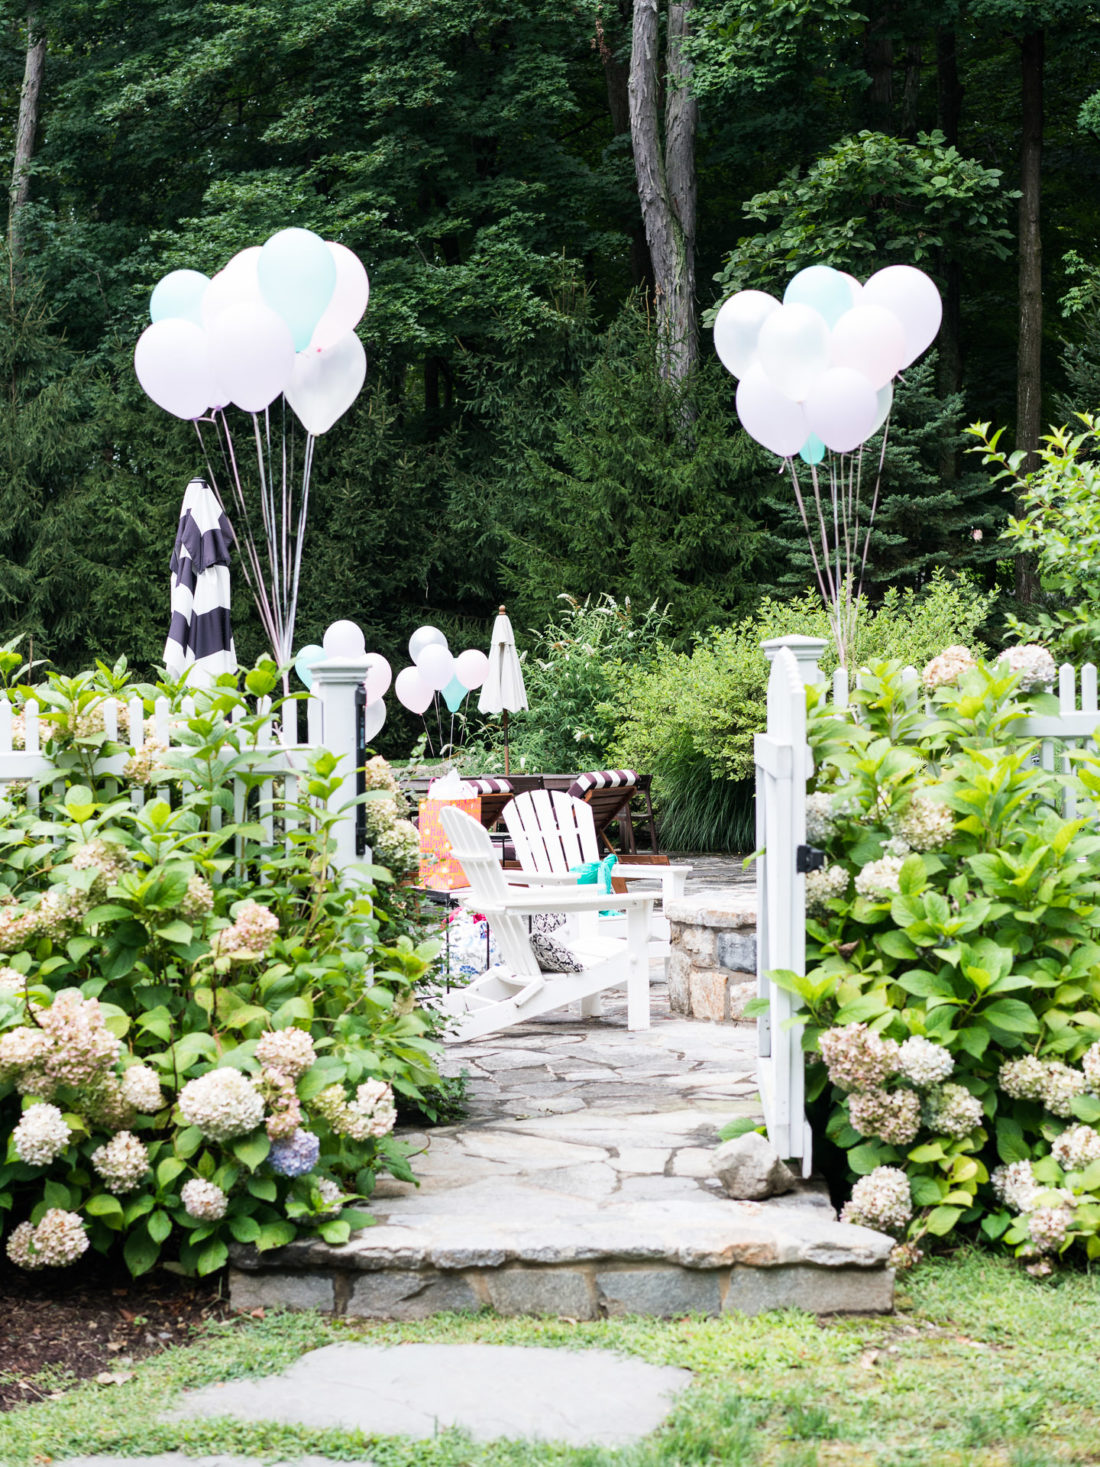 Eva Amurri Martino decorates the backyard of her Connecticut home for daughter Marlowe's 3rd birthday party with a Sharks vs. Mermaids theme